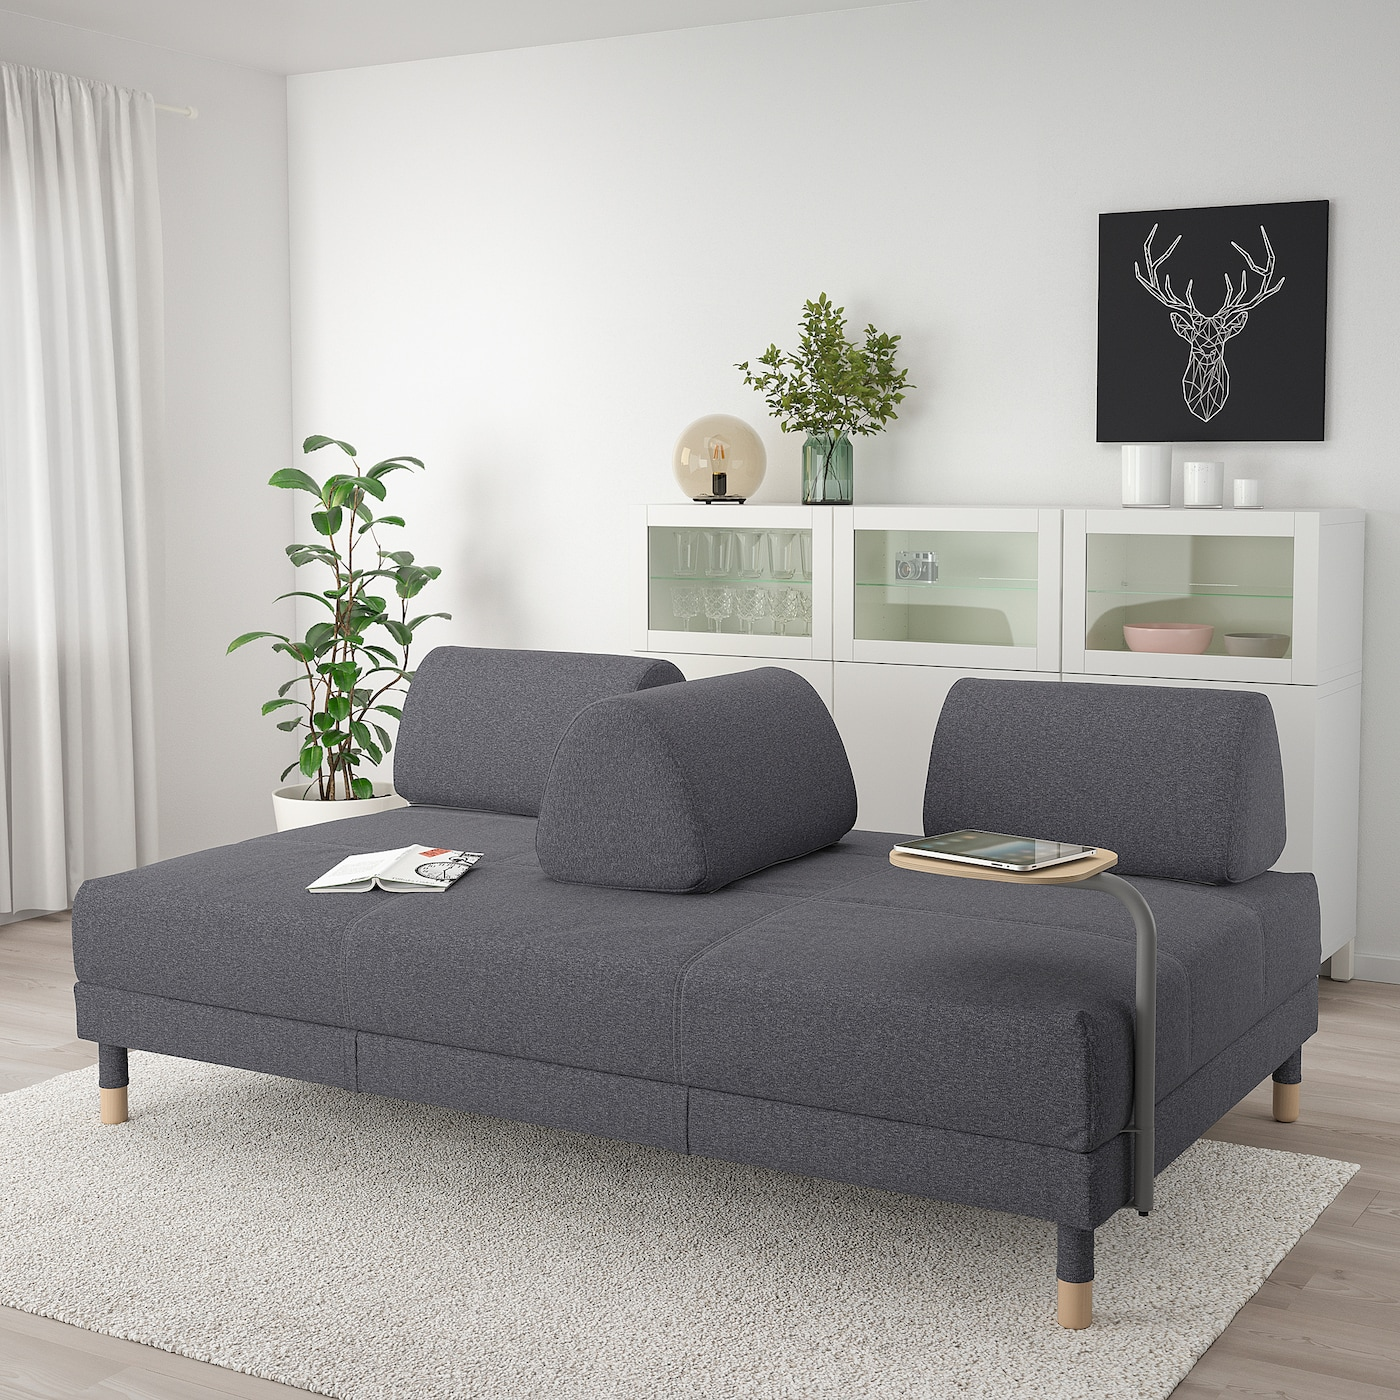 Flottebo Sofa Bed With Side Table